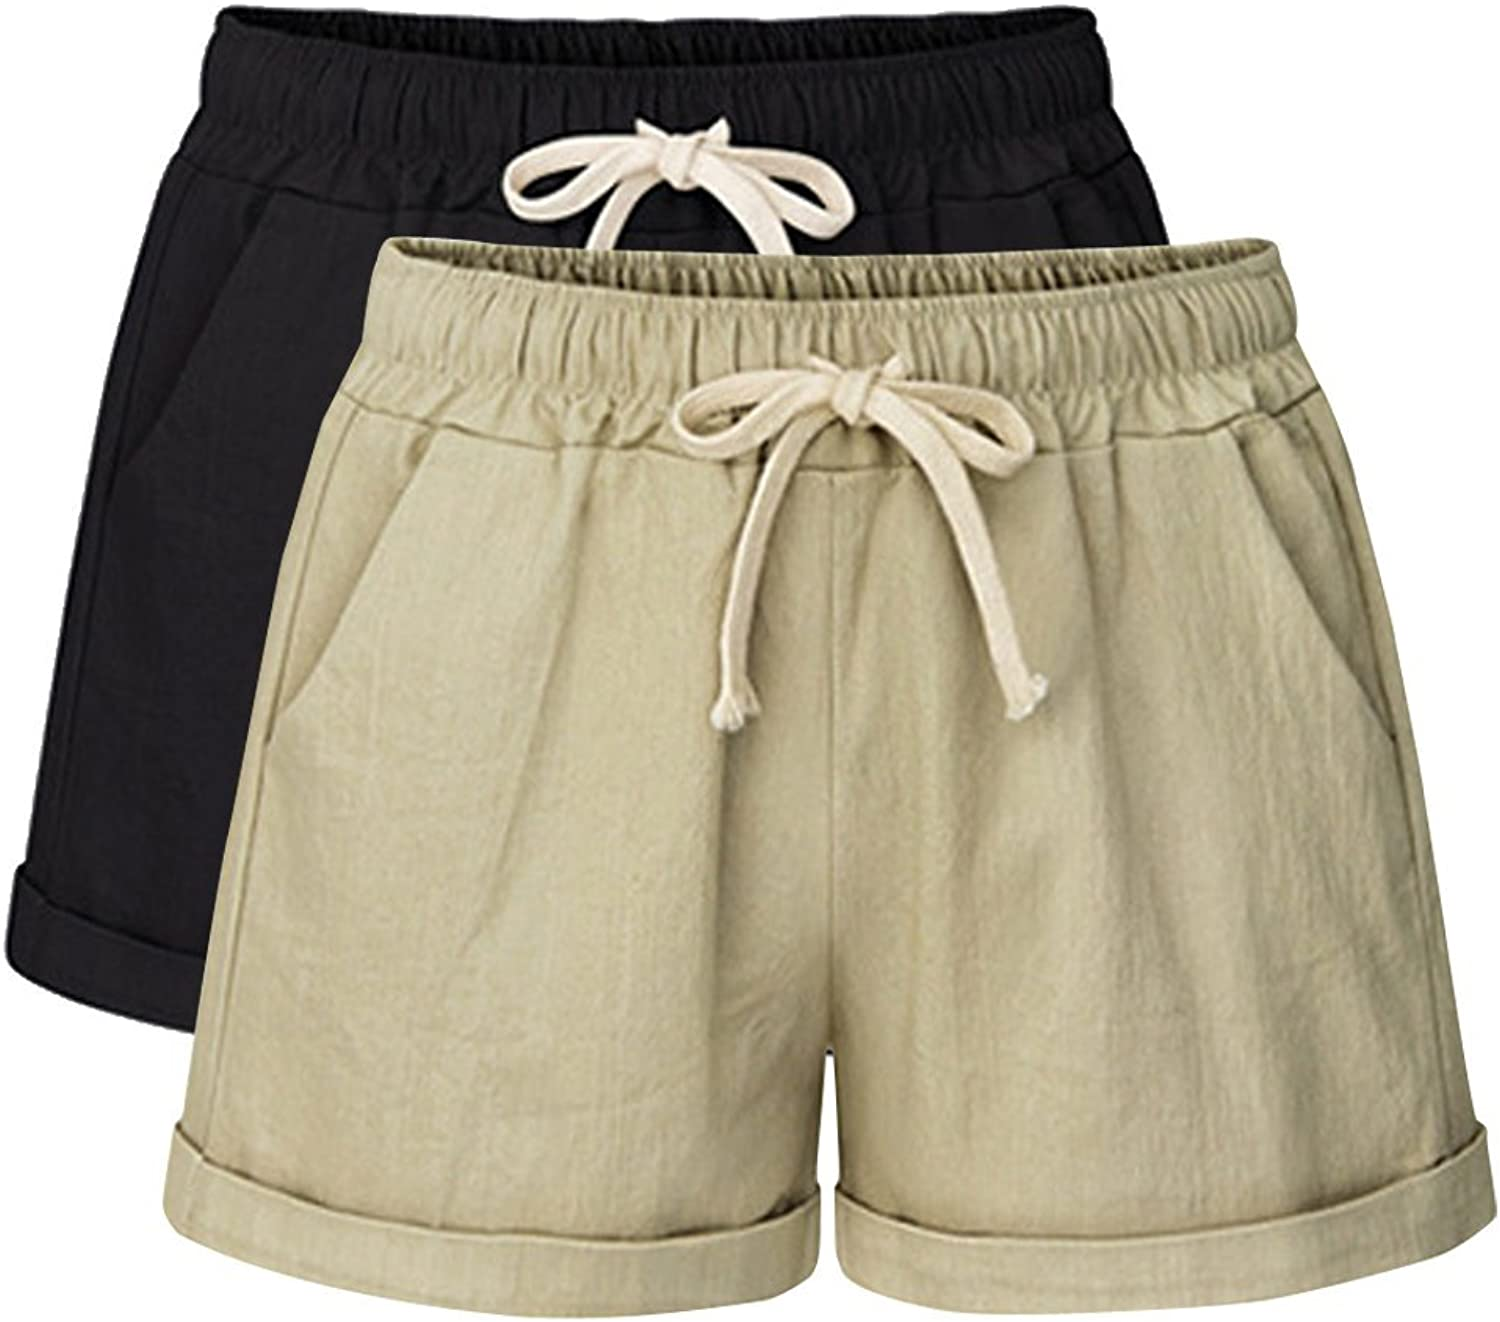 Gooket Women's Elastic Waist Cotton Linen Casual Beach Shorts with Drawstring 2 Pack Black+Khaki Tag 6XLUS 20